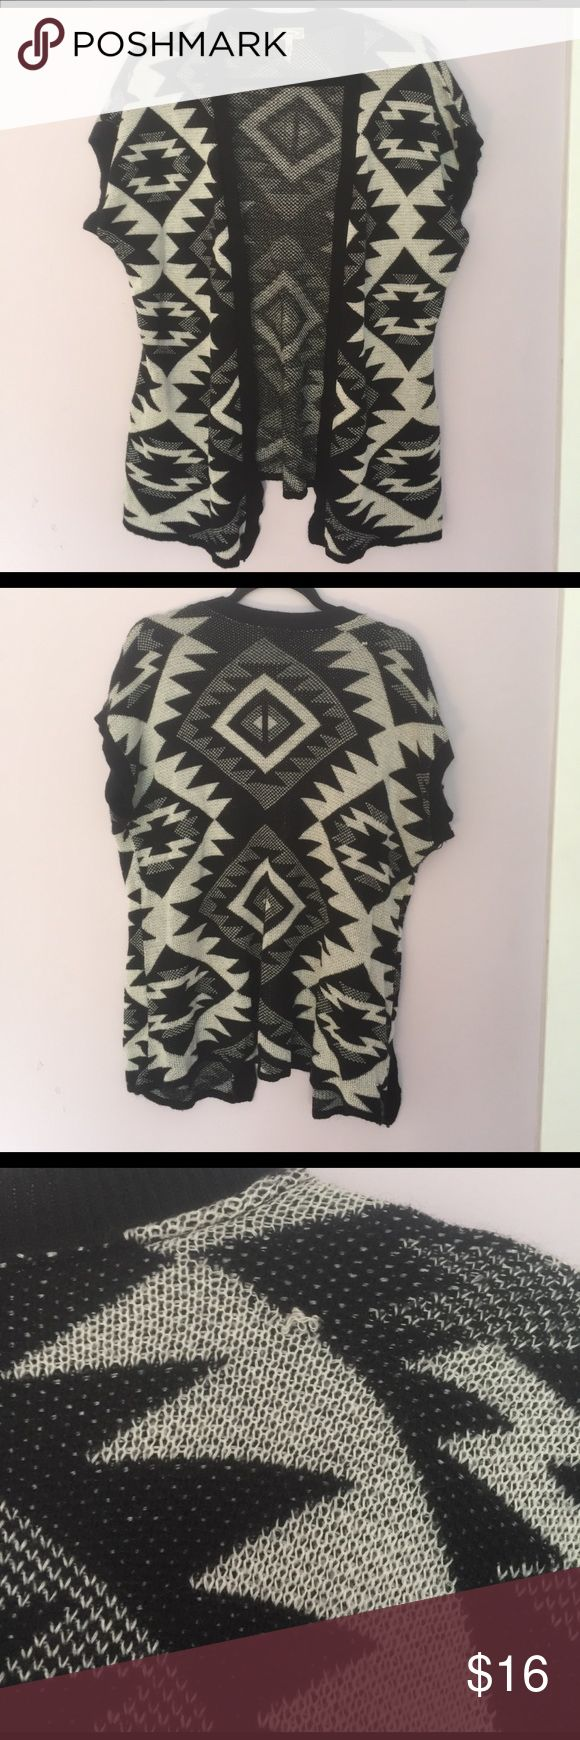 Kirra open front tribal cardigan Black and white tribal print boho cardigan. A few small pulls in the fabric but otherwise in great condition! Great with leggings and a long necklace for a edgy boho look. Kirra Sweaters Cardigans